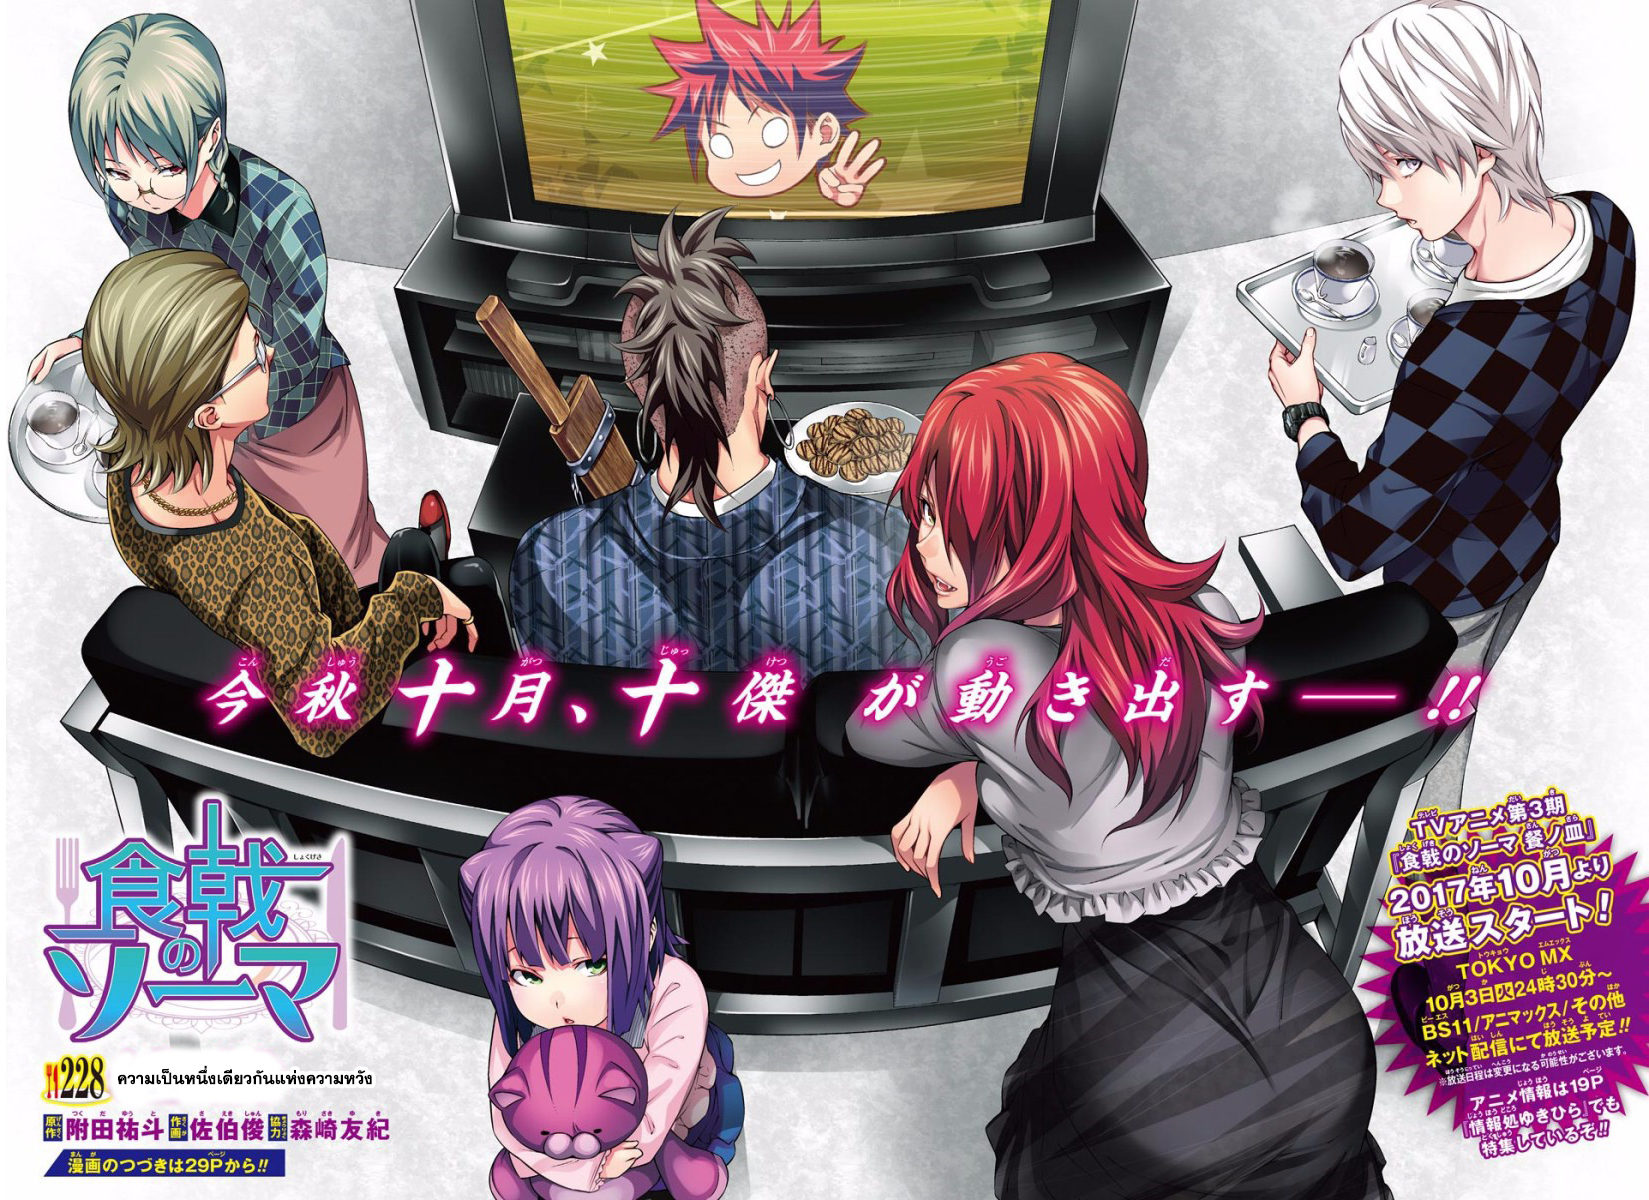 Shokugeki no Soma 228 TH